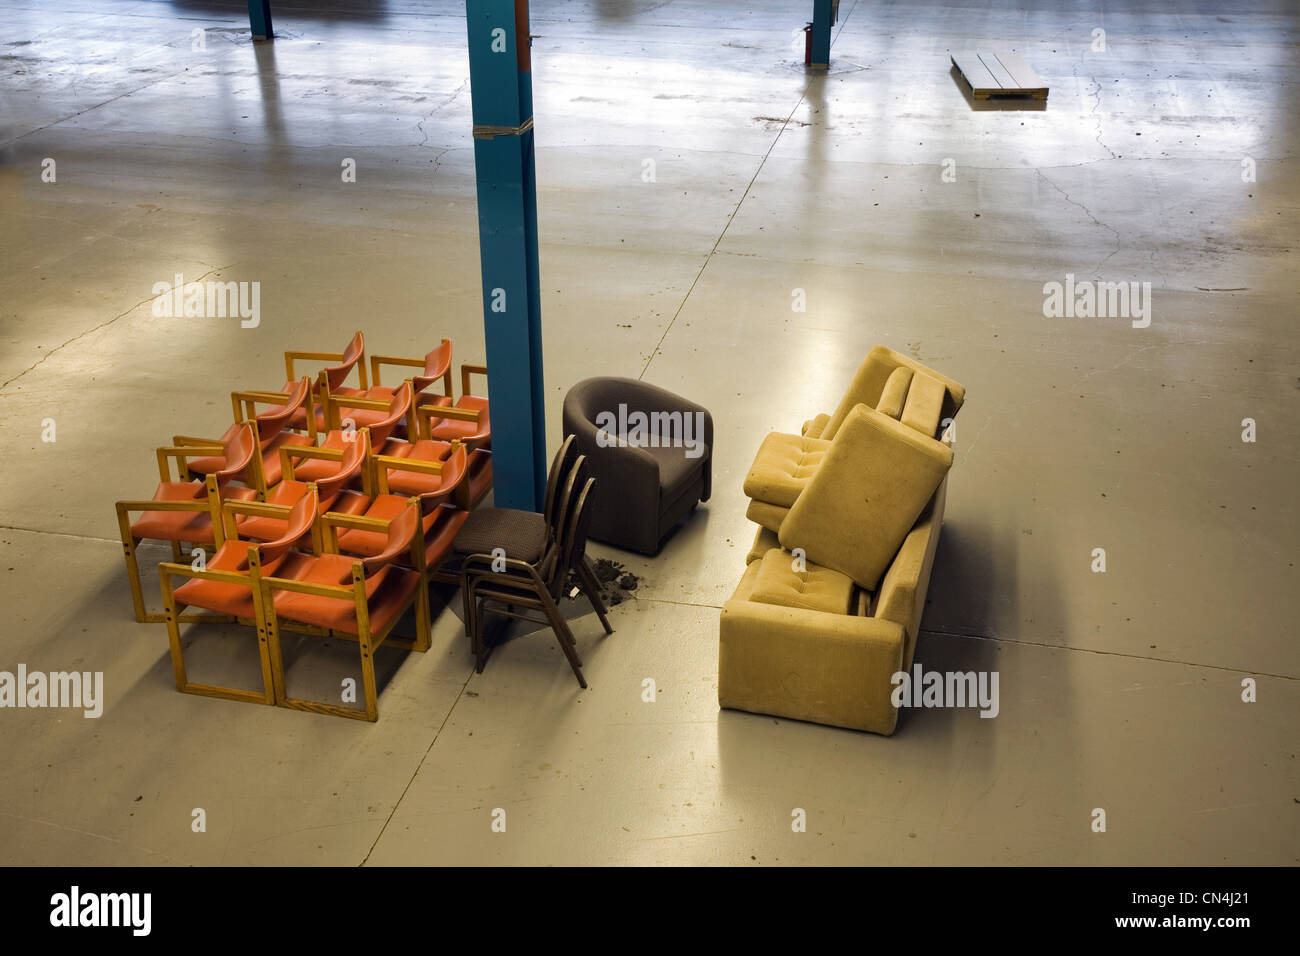 Chairs stacked in an empty warehouse - Stock Image